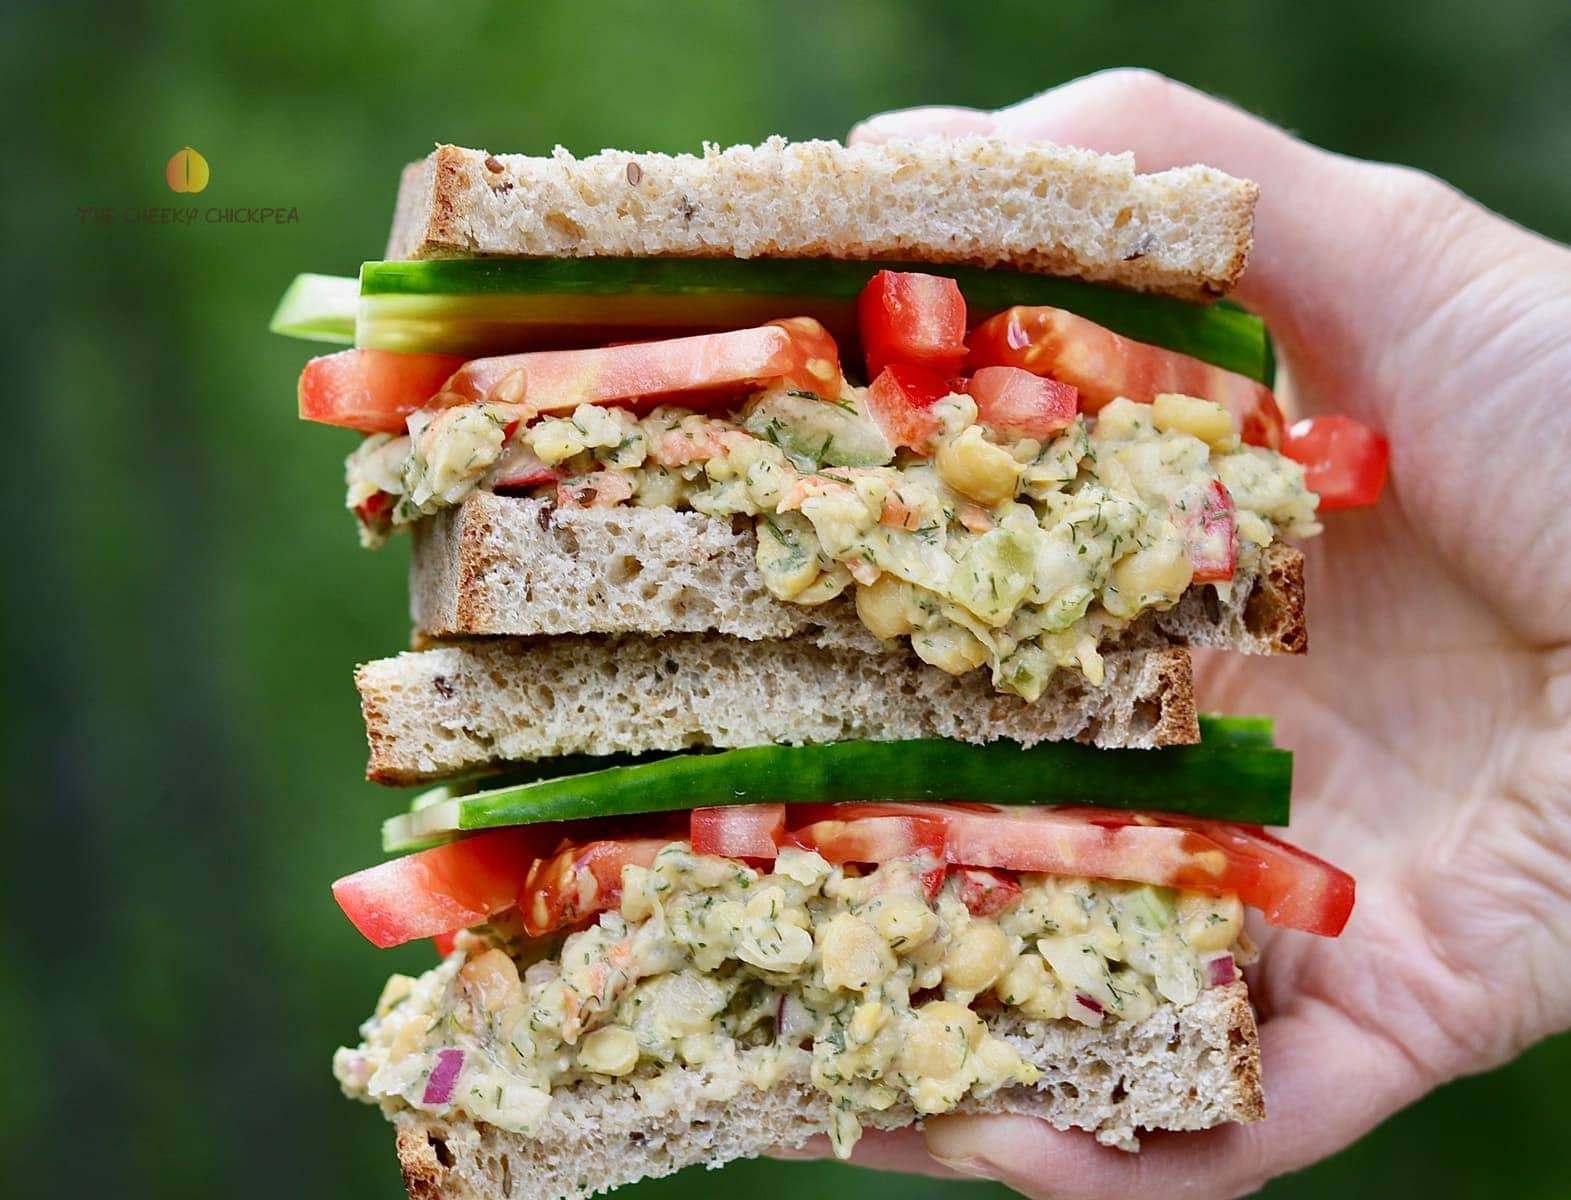 chickpea salad sandwich being held in the air